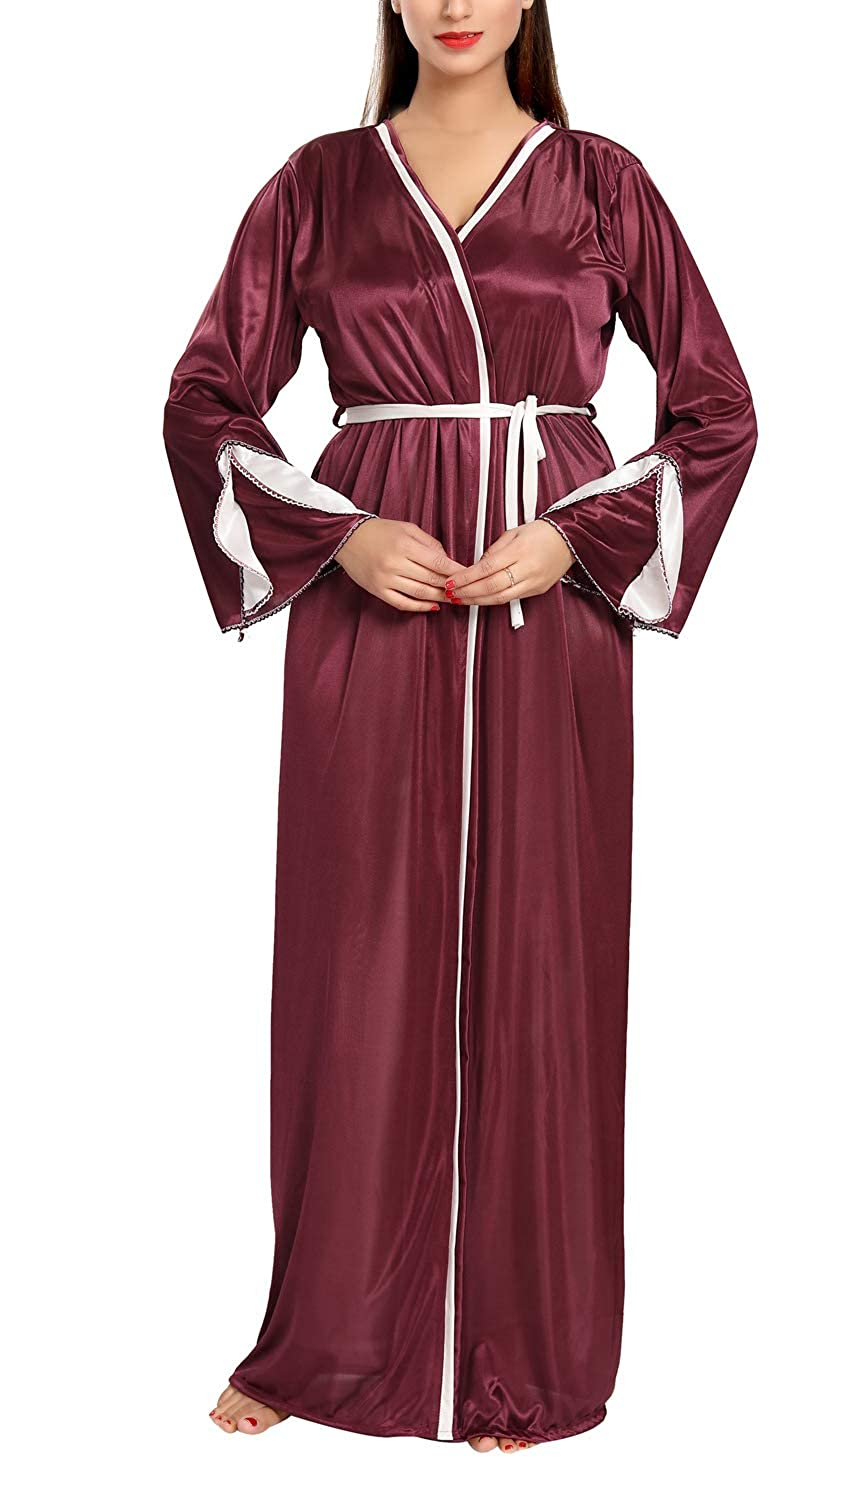 Be You Fashion Women Satin Wine color Solid 2 piece Nighty Set at Amazon  Women s Clothing store  df1d89d36